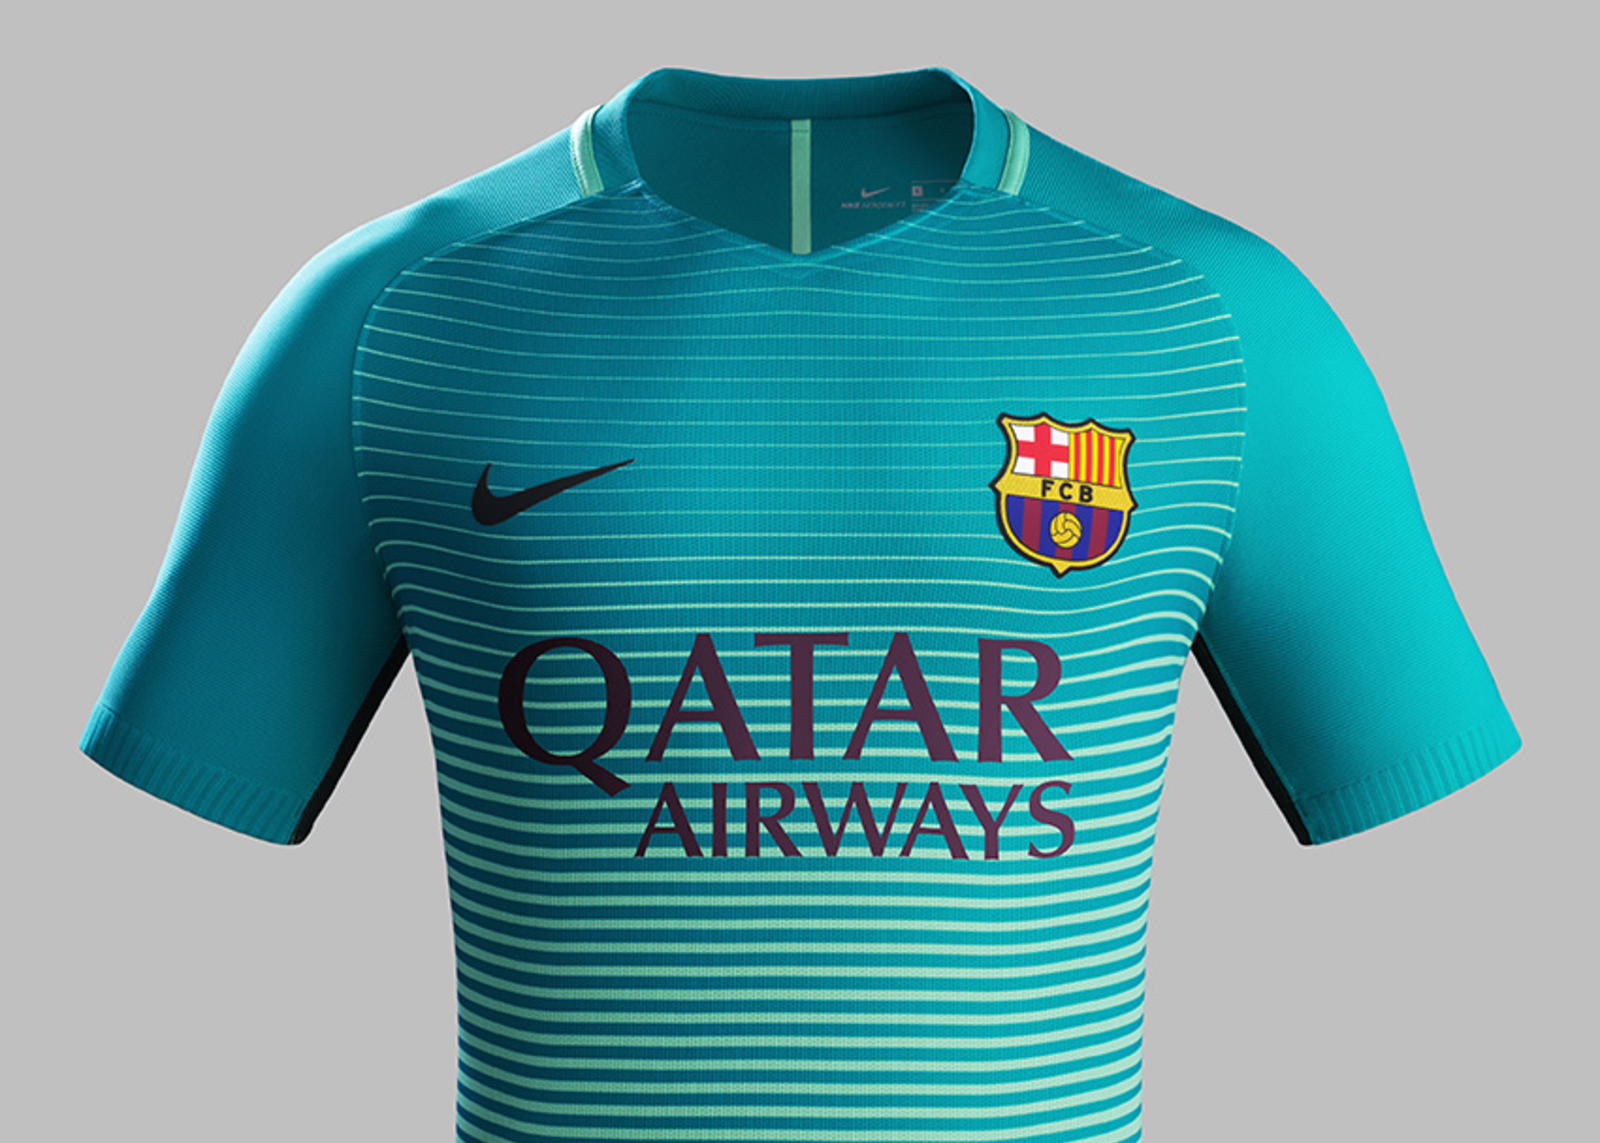 7a25fd0821 Fa16 CK Comms 3RD Crest Match FCB. F.C. Barcelona third kit.  Fa16 CK Comms 3RD Front Match FCB